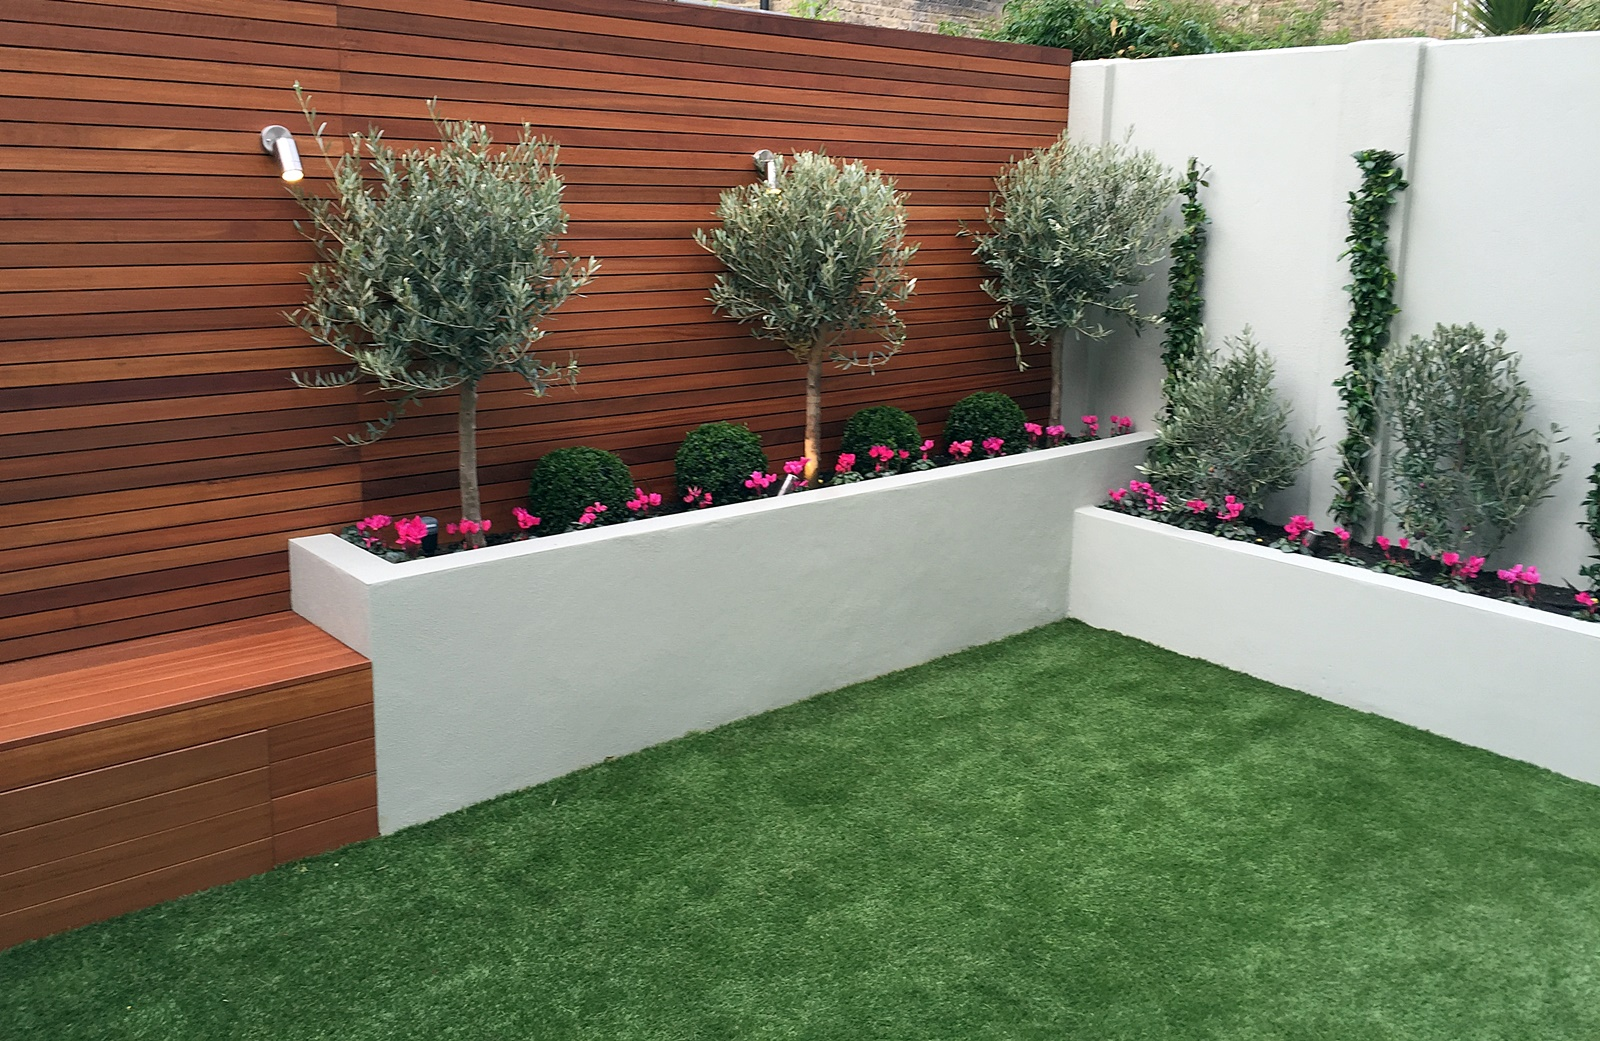 Designer london garden blog for Simple garden design